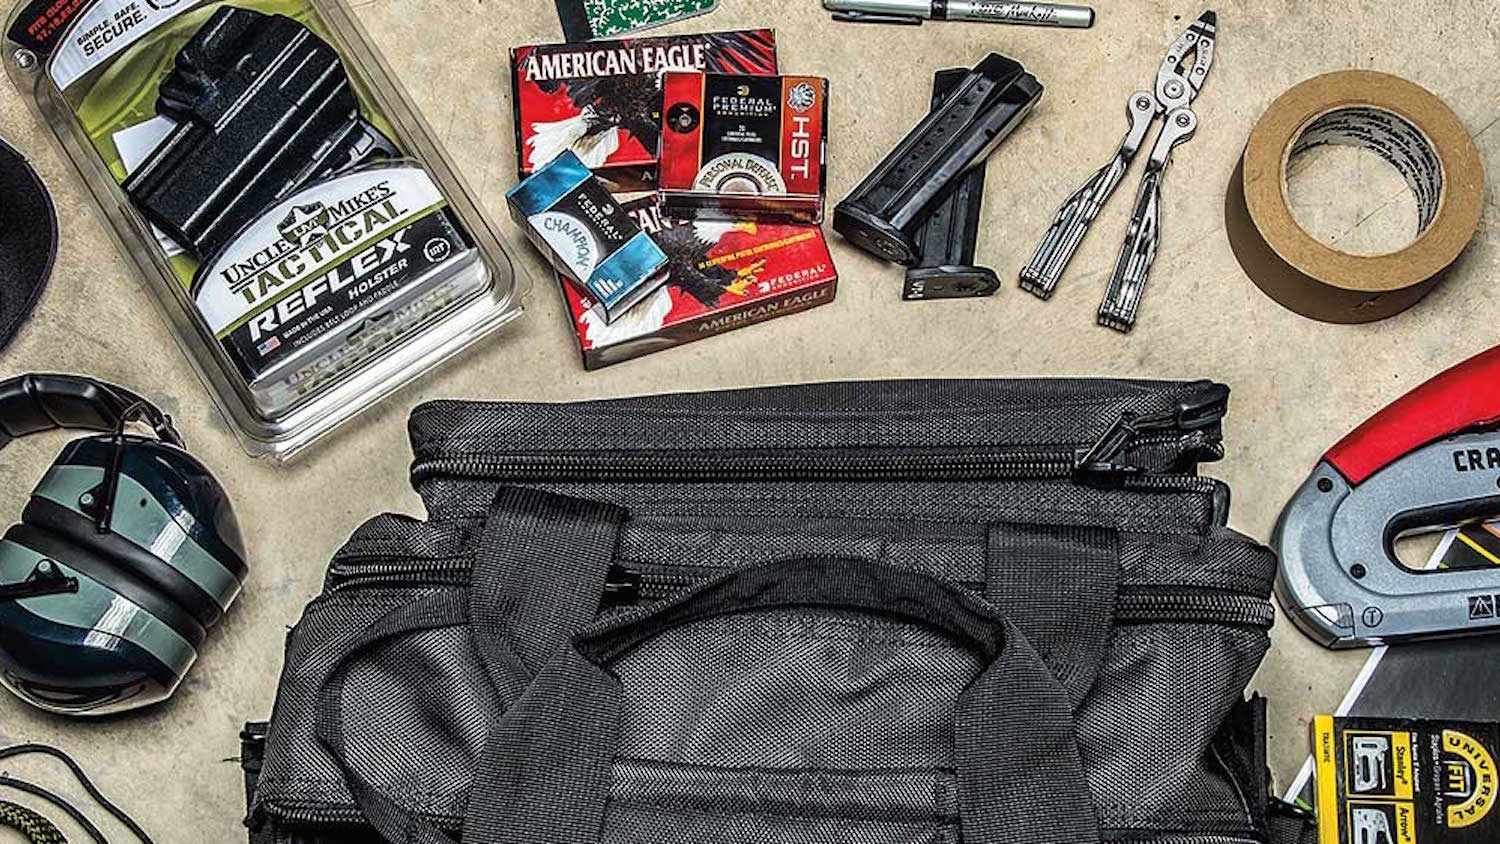 America's Rifle: What's in the Range Bag?